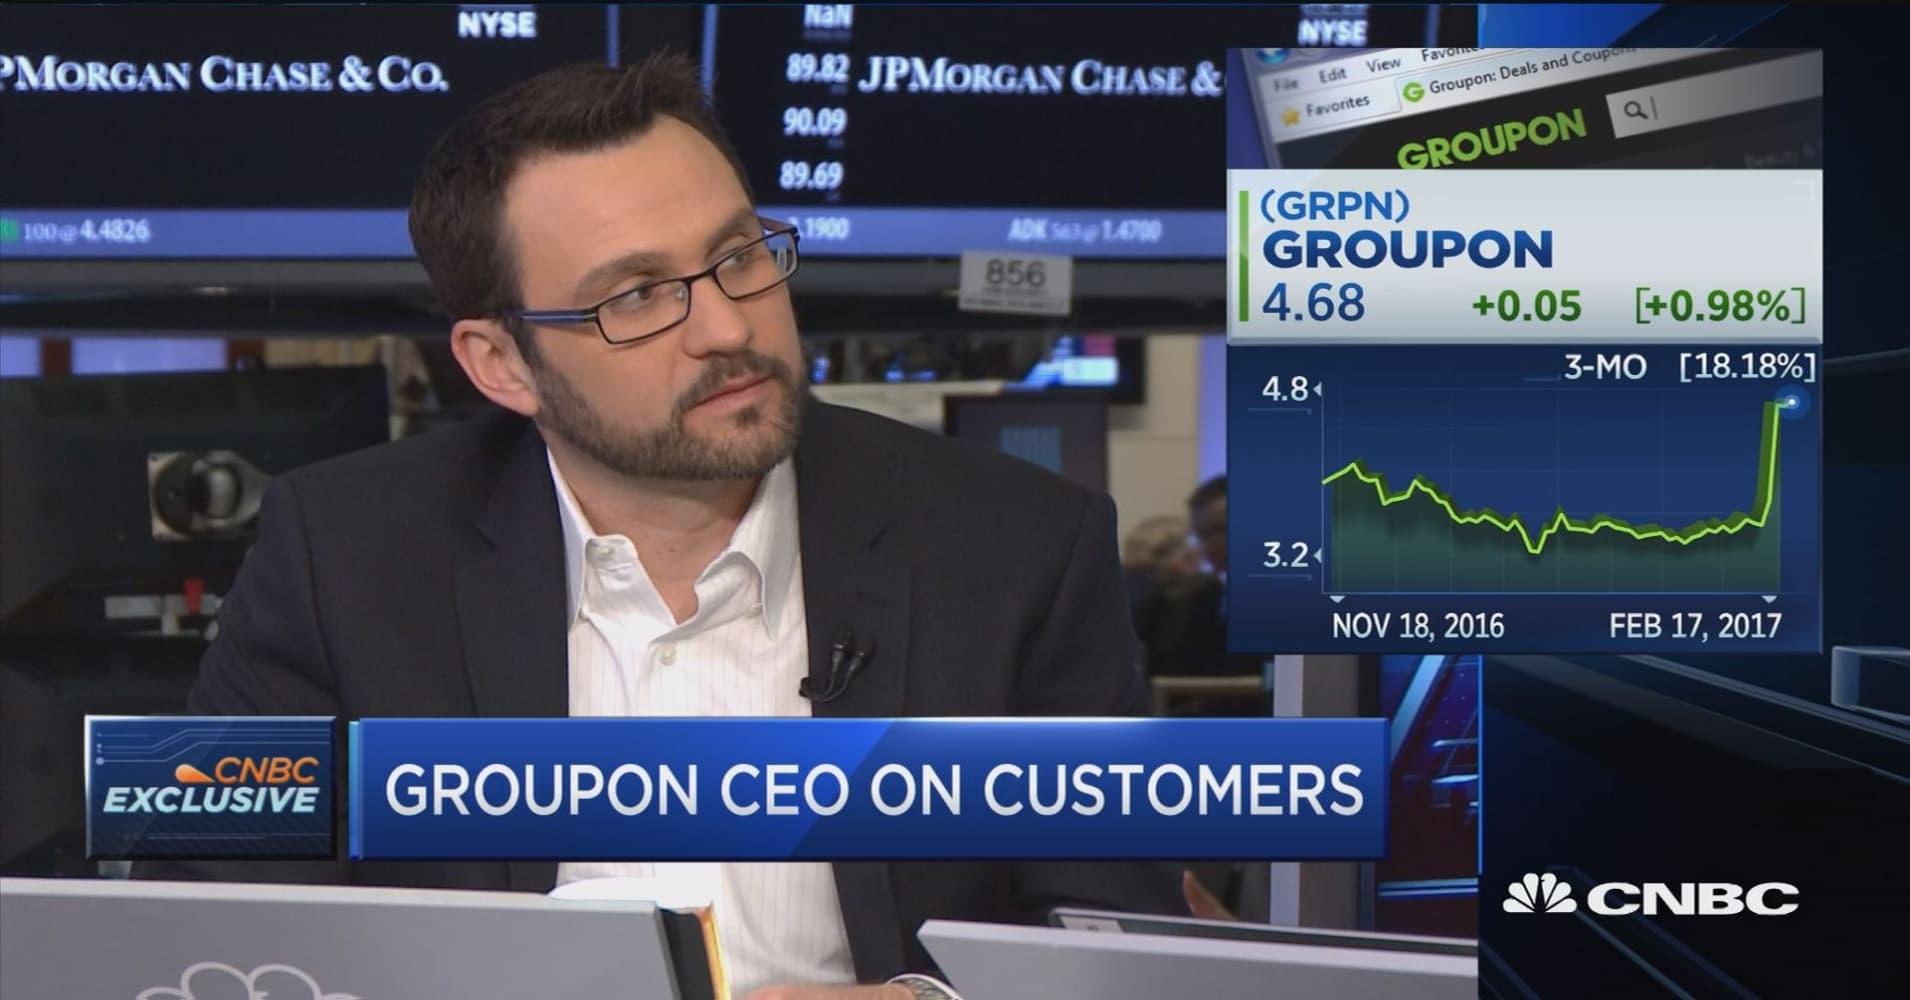 Groupon Stock Quote Groupon Ceo Warns Young Executives To 'beware Of The Limelight'